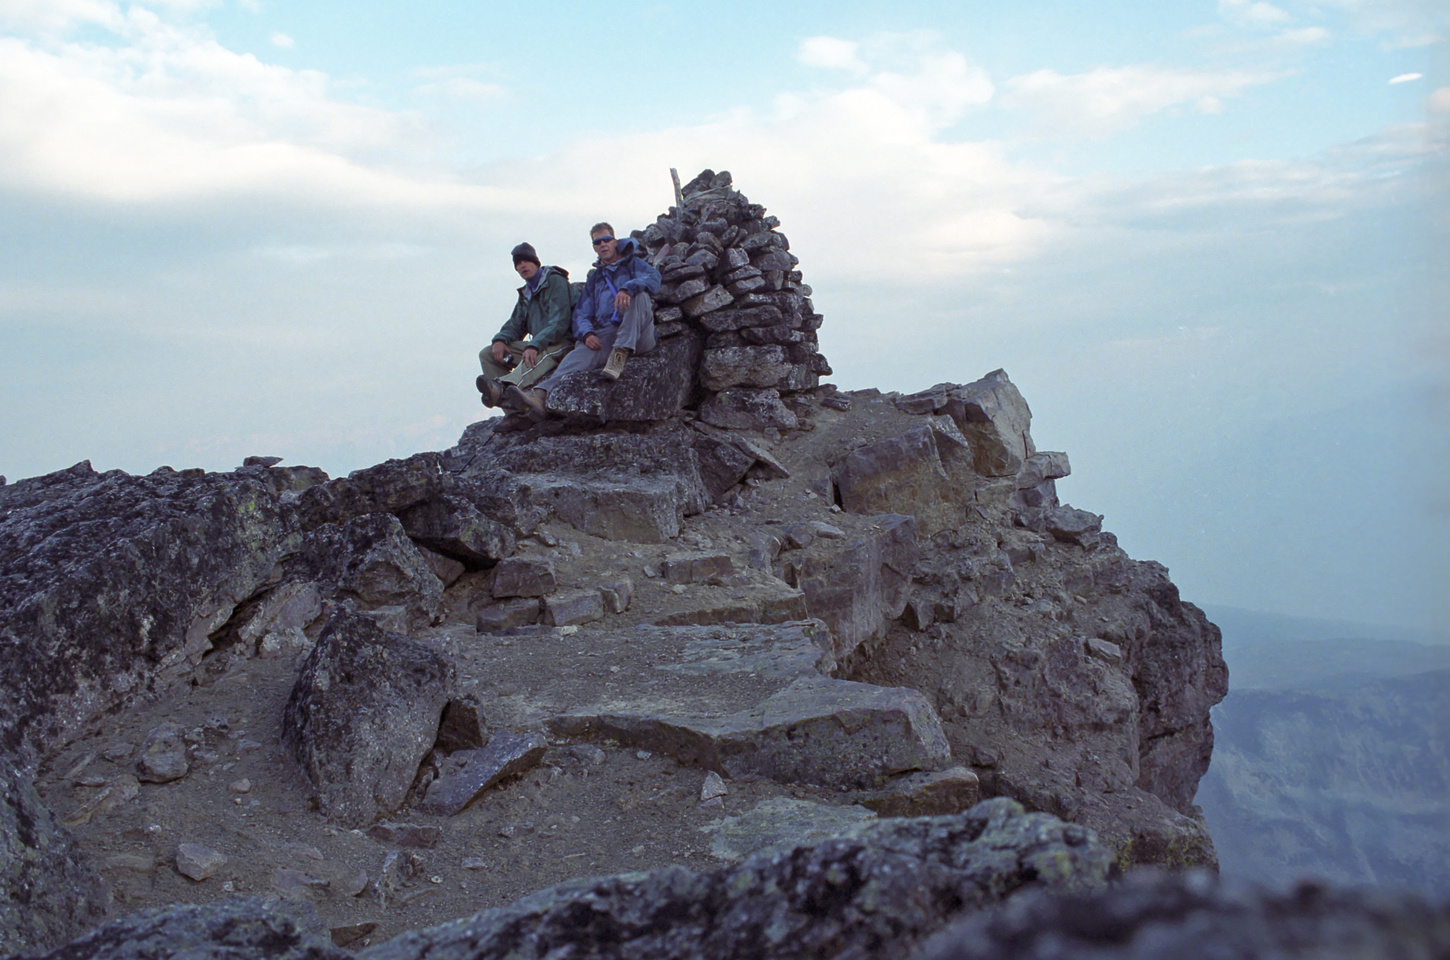 Vern and Jon at the summit of Mount Tekarra.